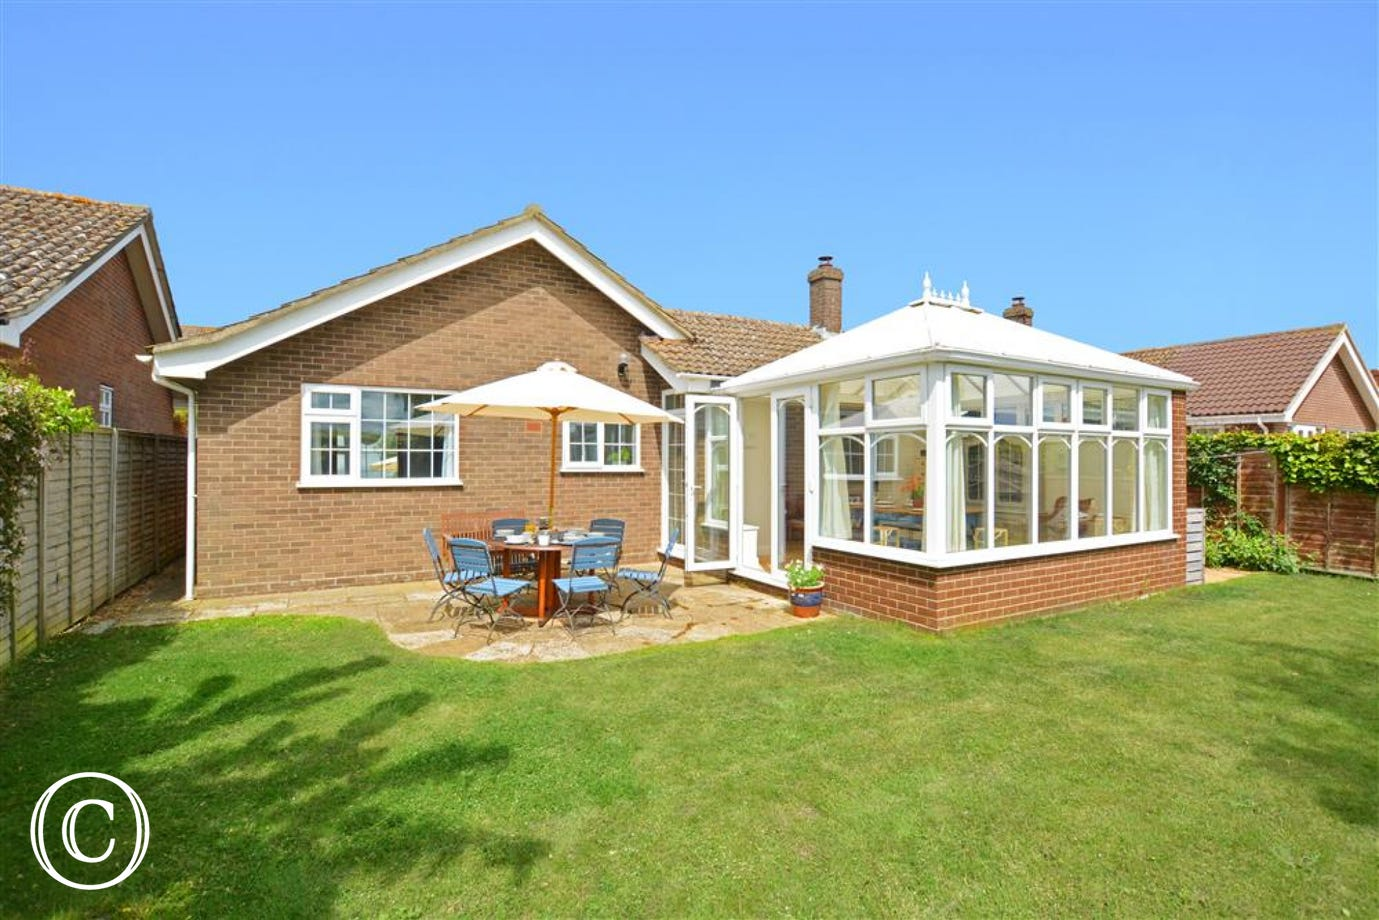 Rear exterior of this lovely bungalow in a fantastic rural location